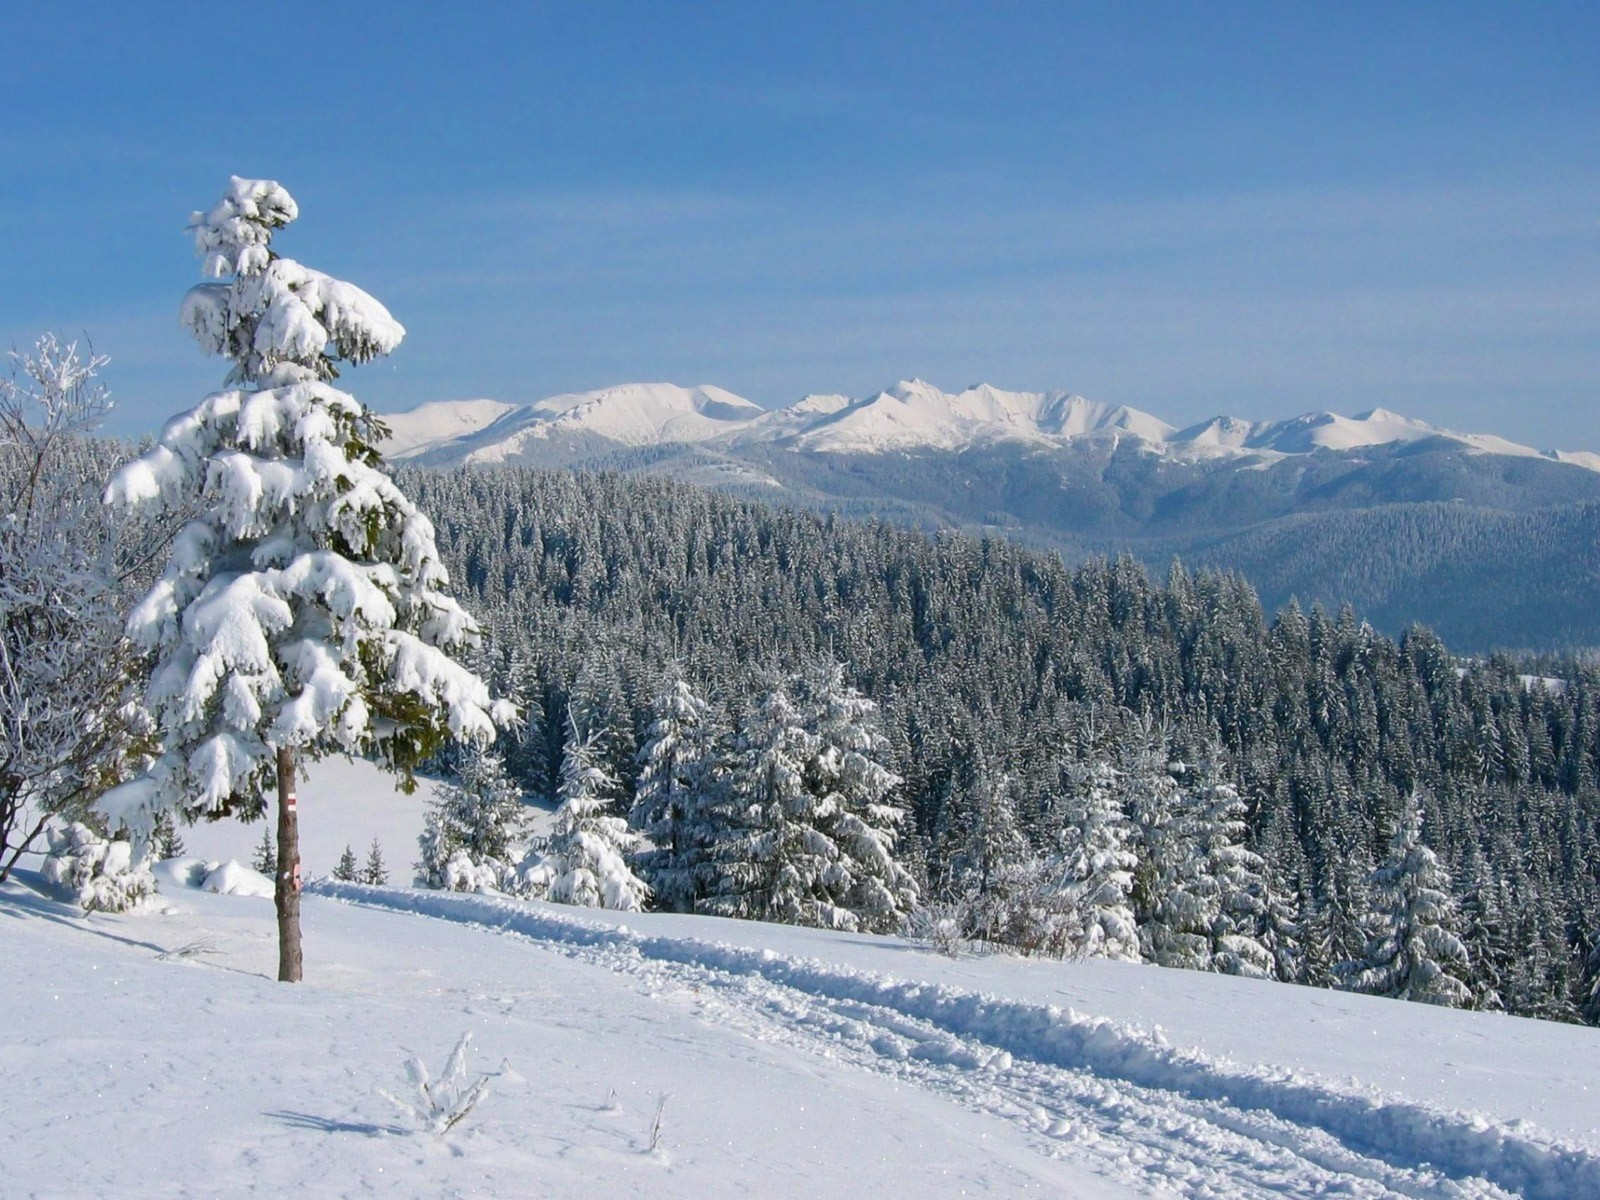 Landscapes snow forests trail